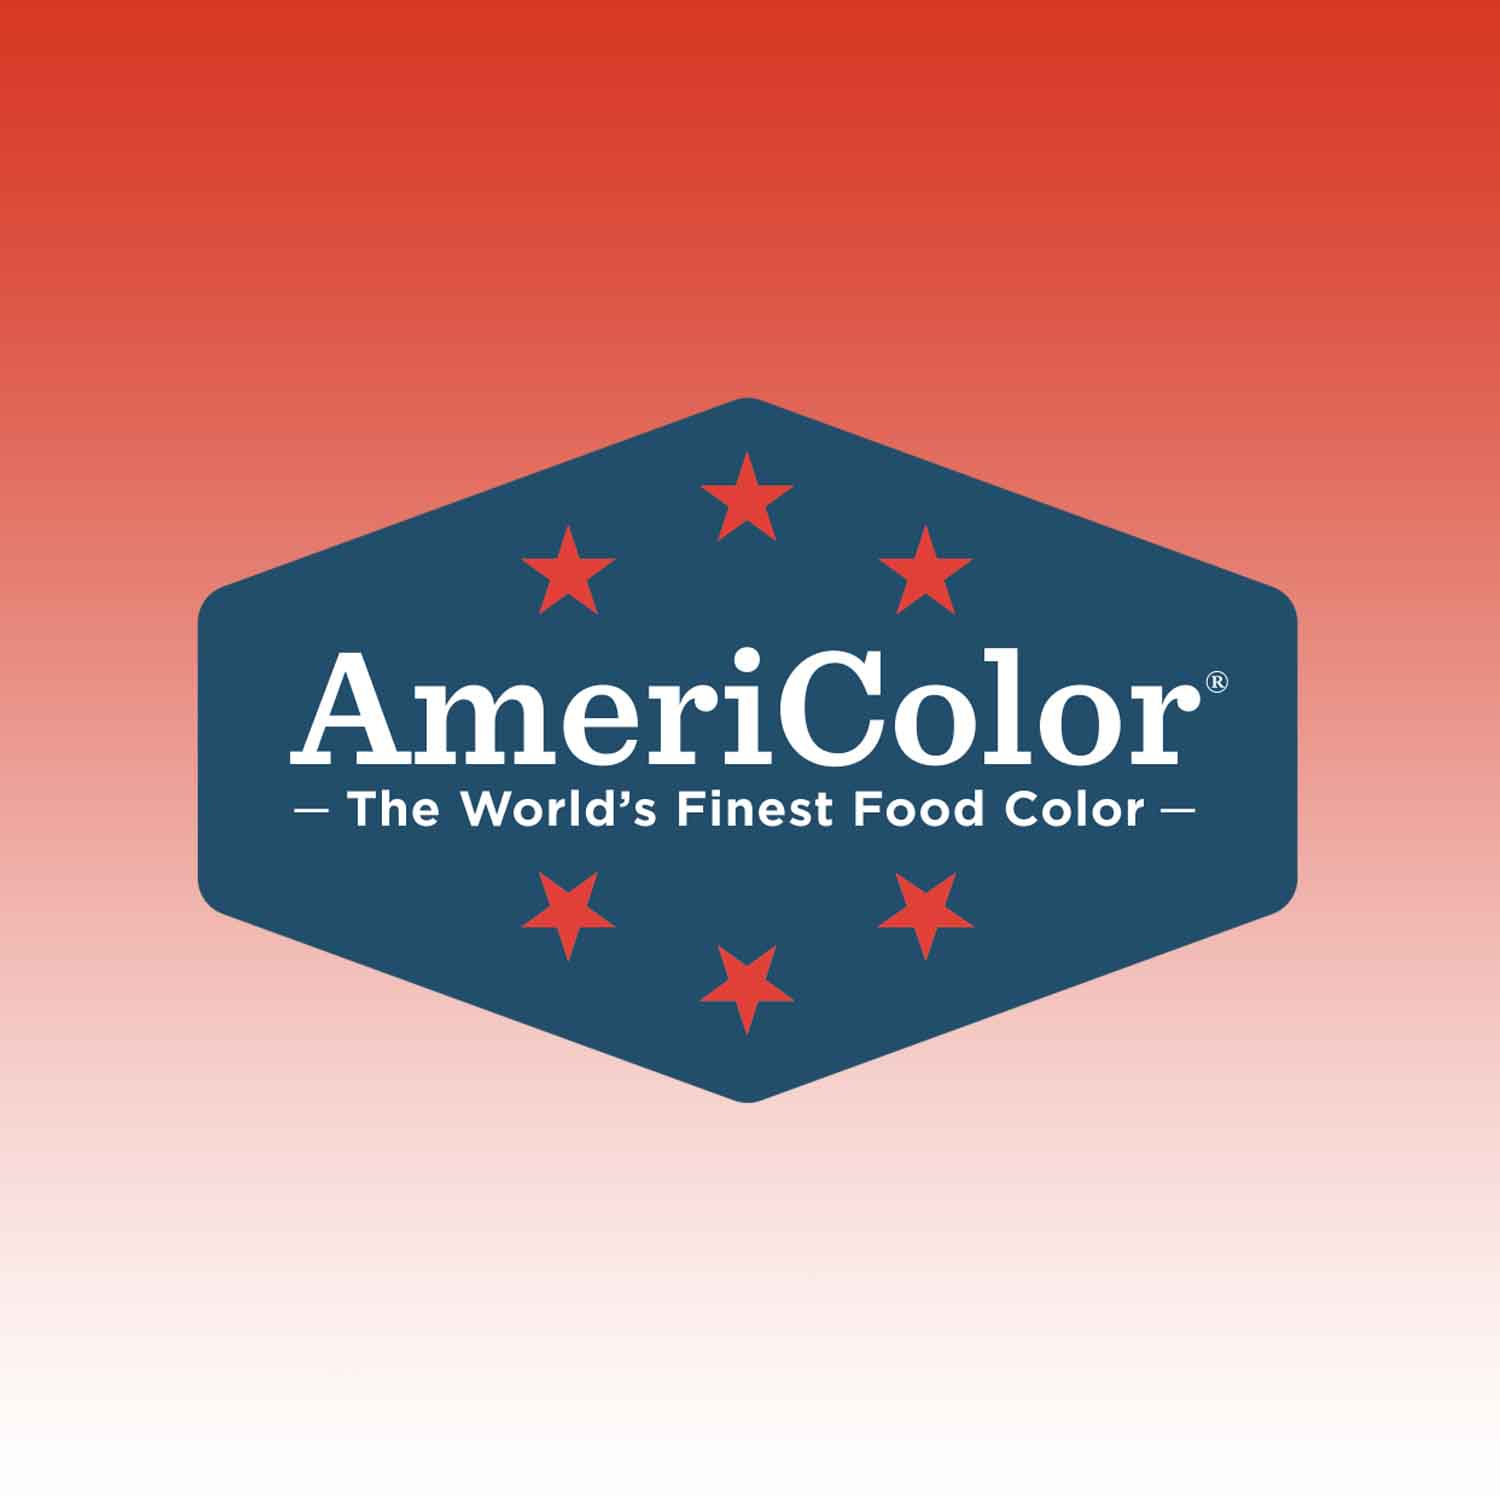 Super Red Americolor AmeriMist Airbrush Food Color (Old # 34-620)